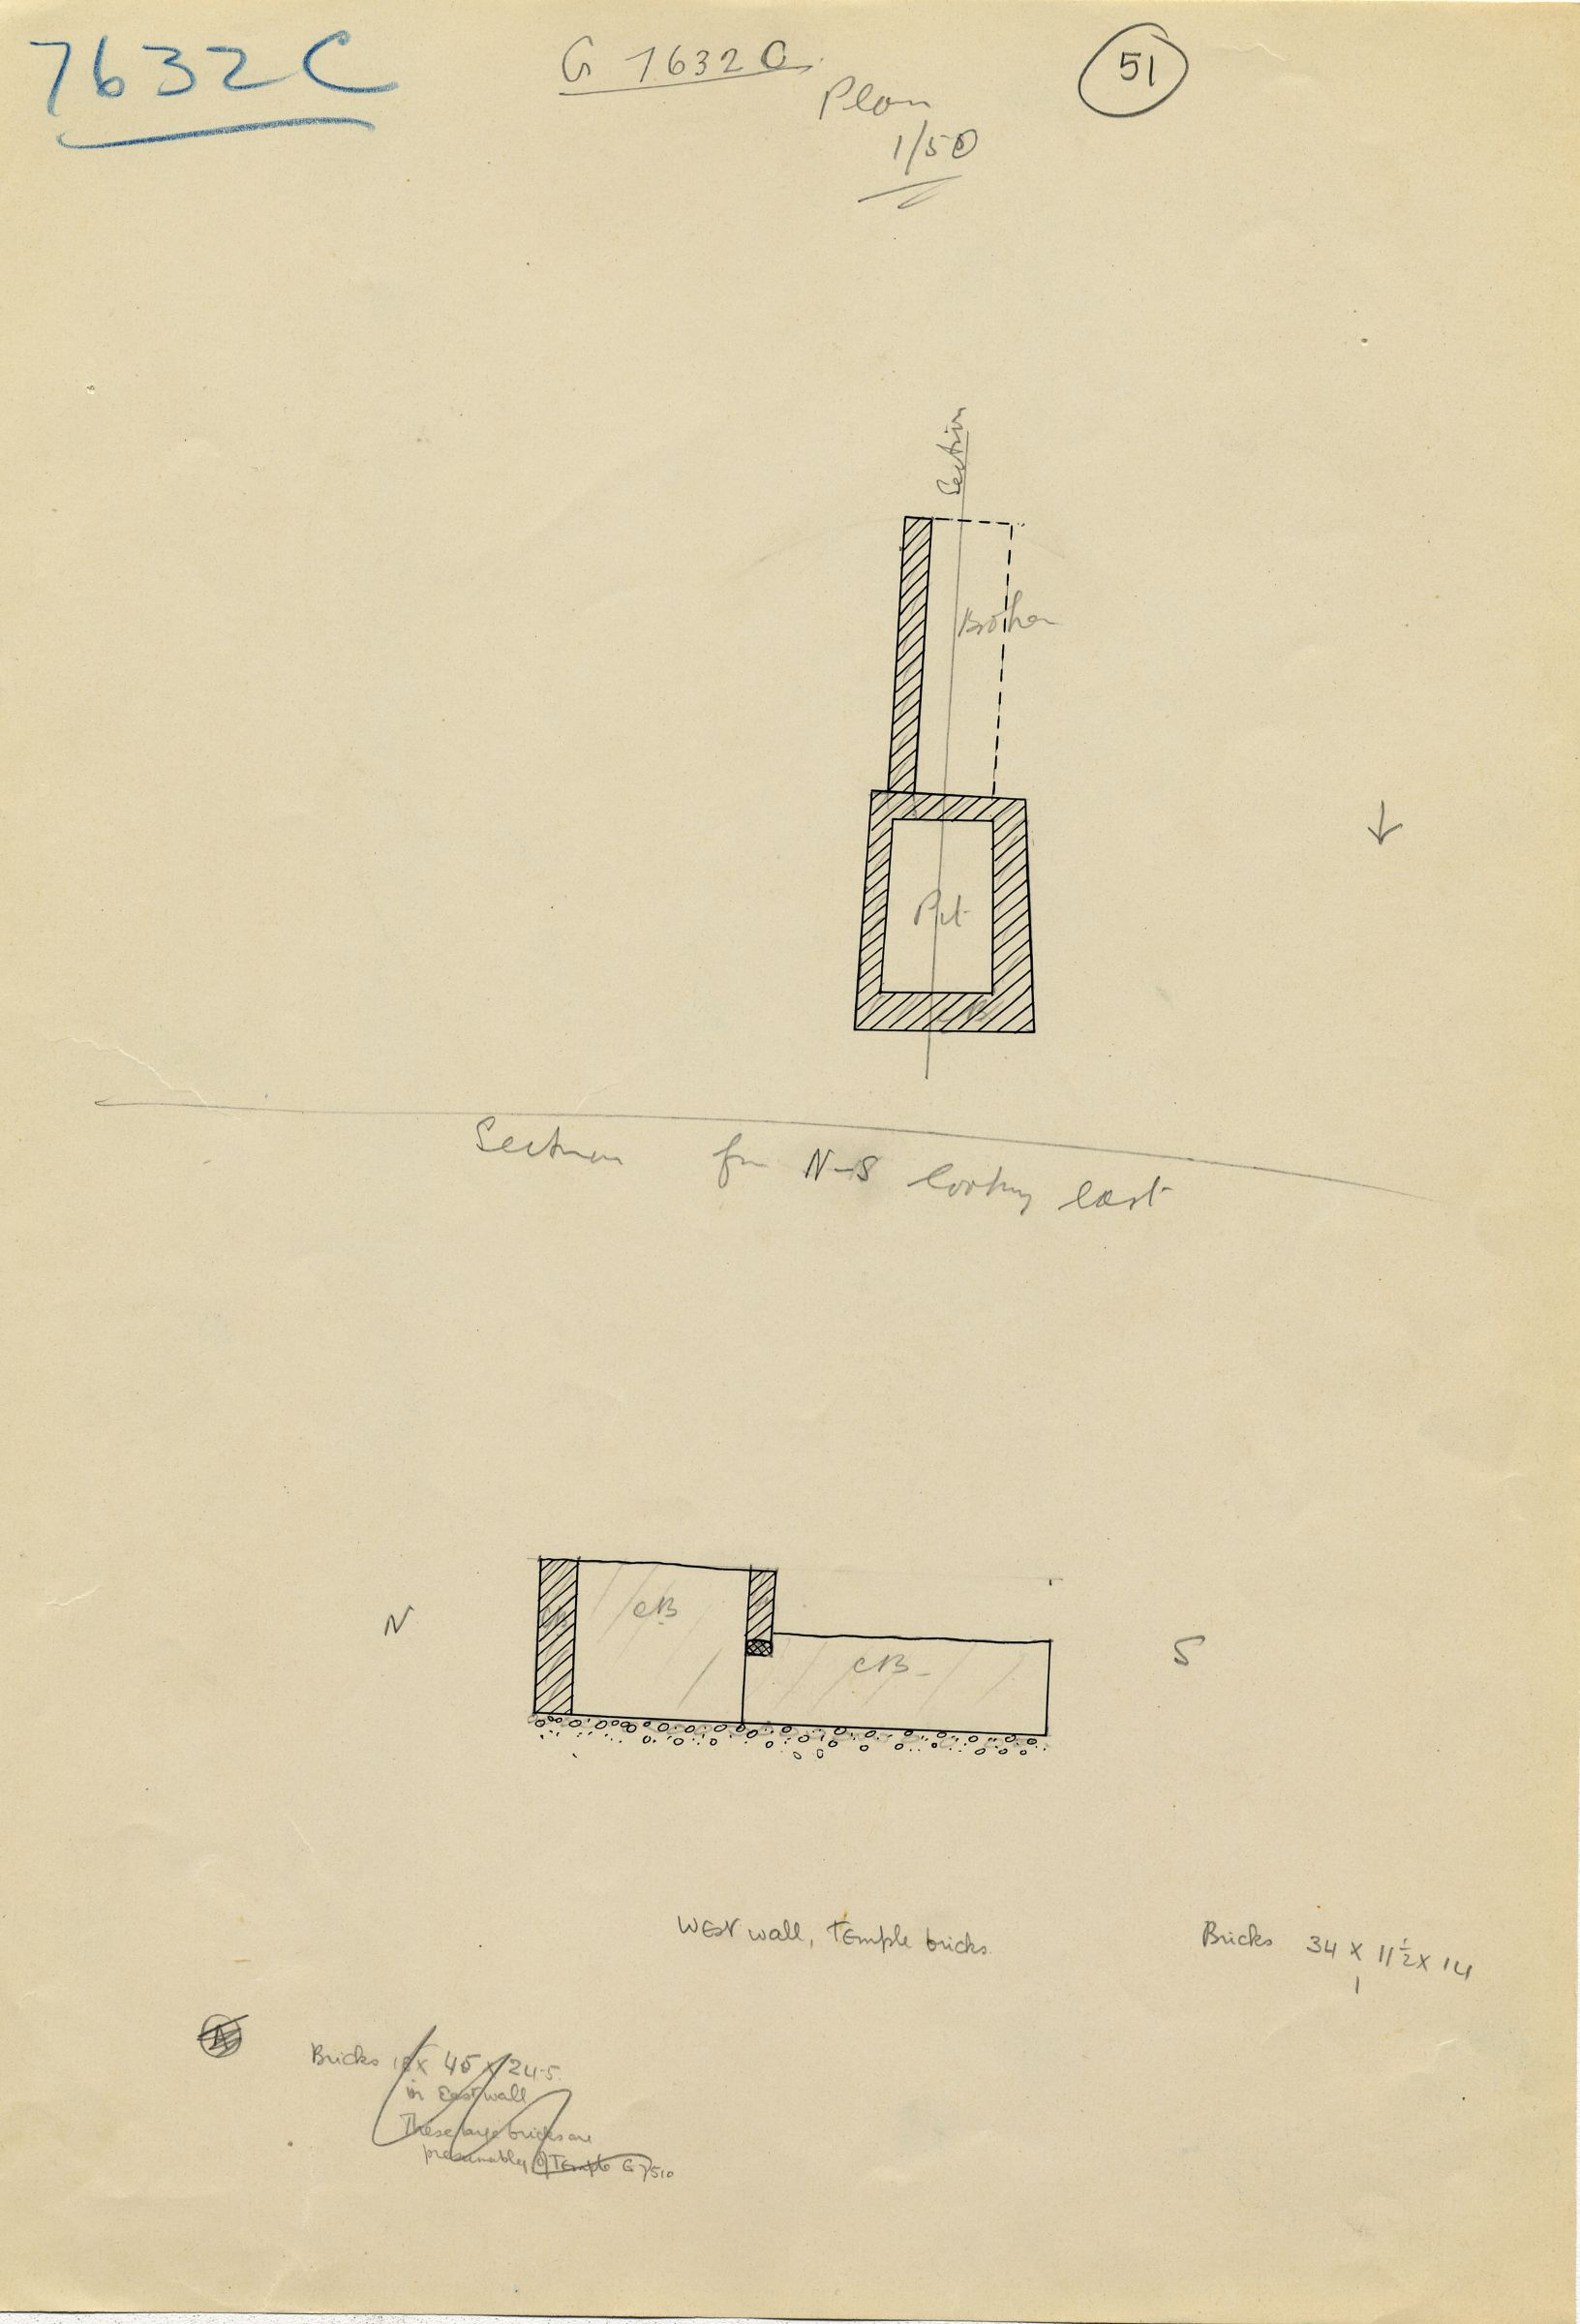 Maps and plans: G 7632, Shaft C